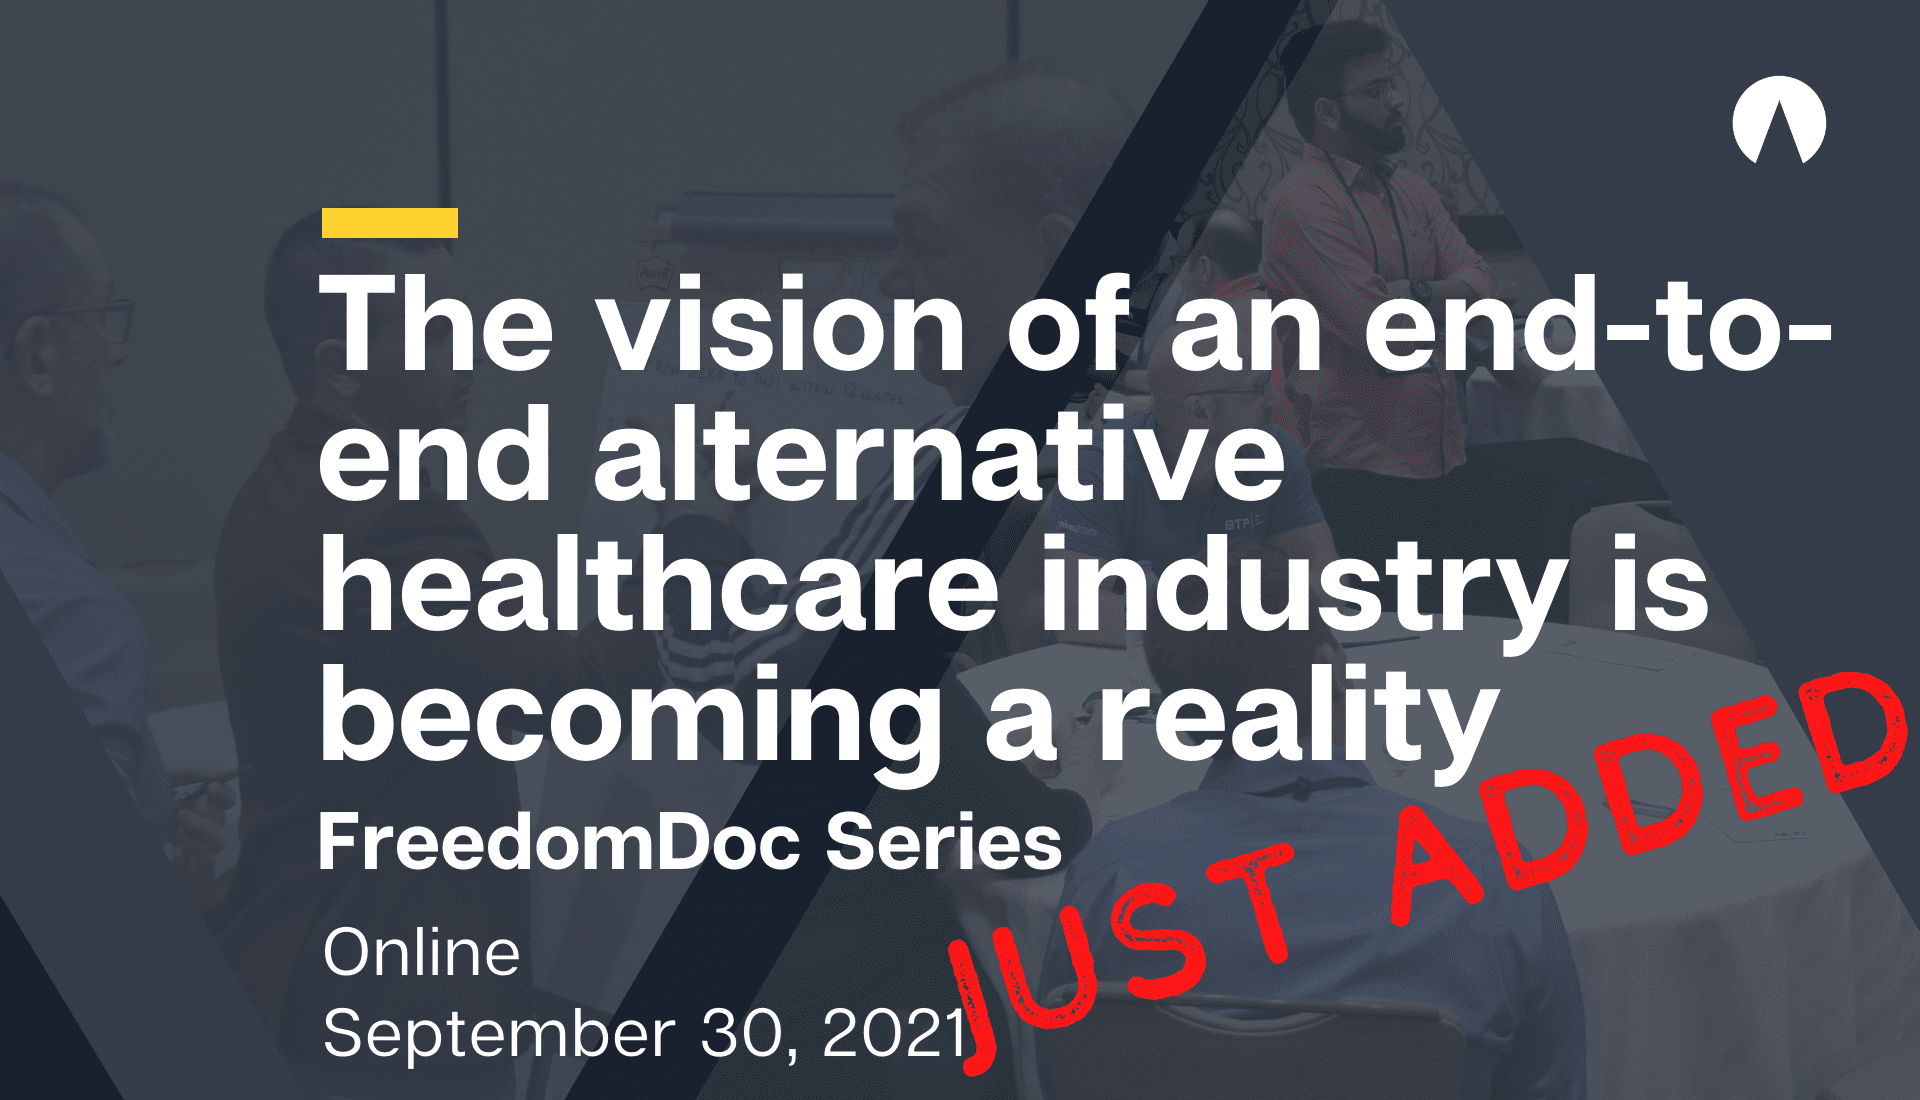 The vision of an end-to-end alternative healthcare industry is becoming a reality